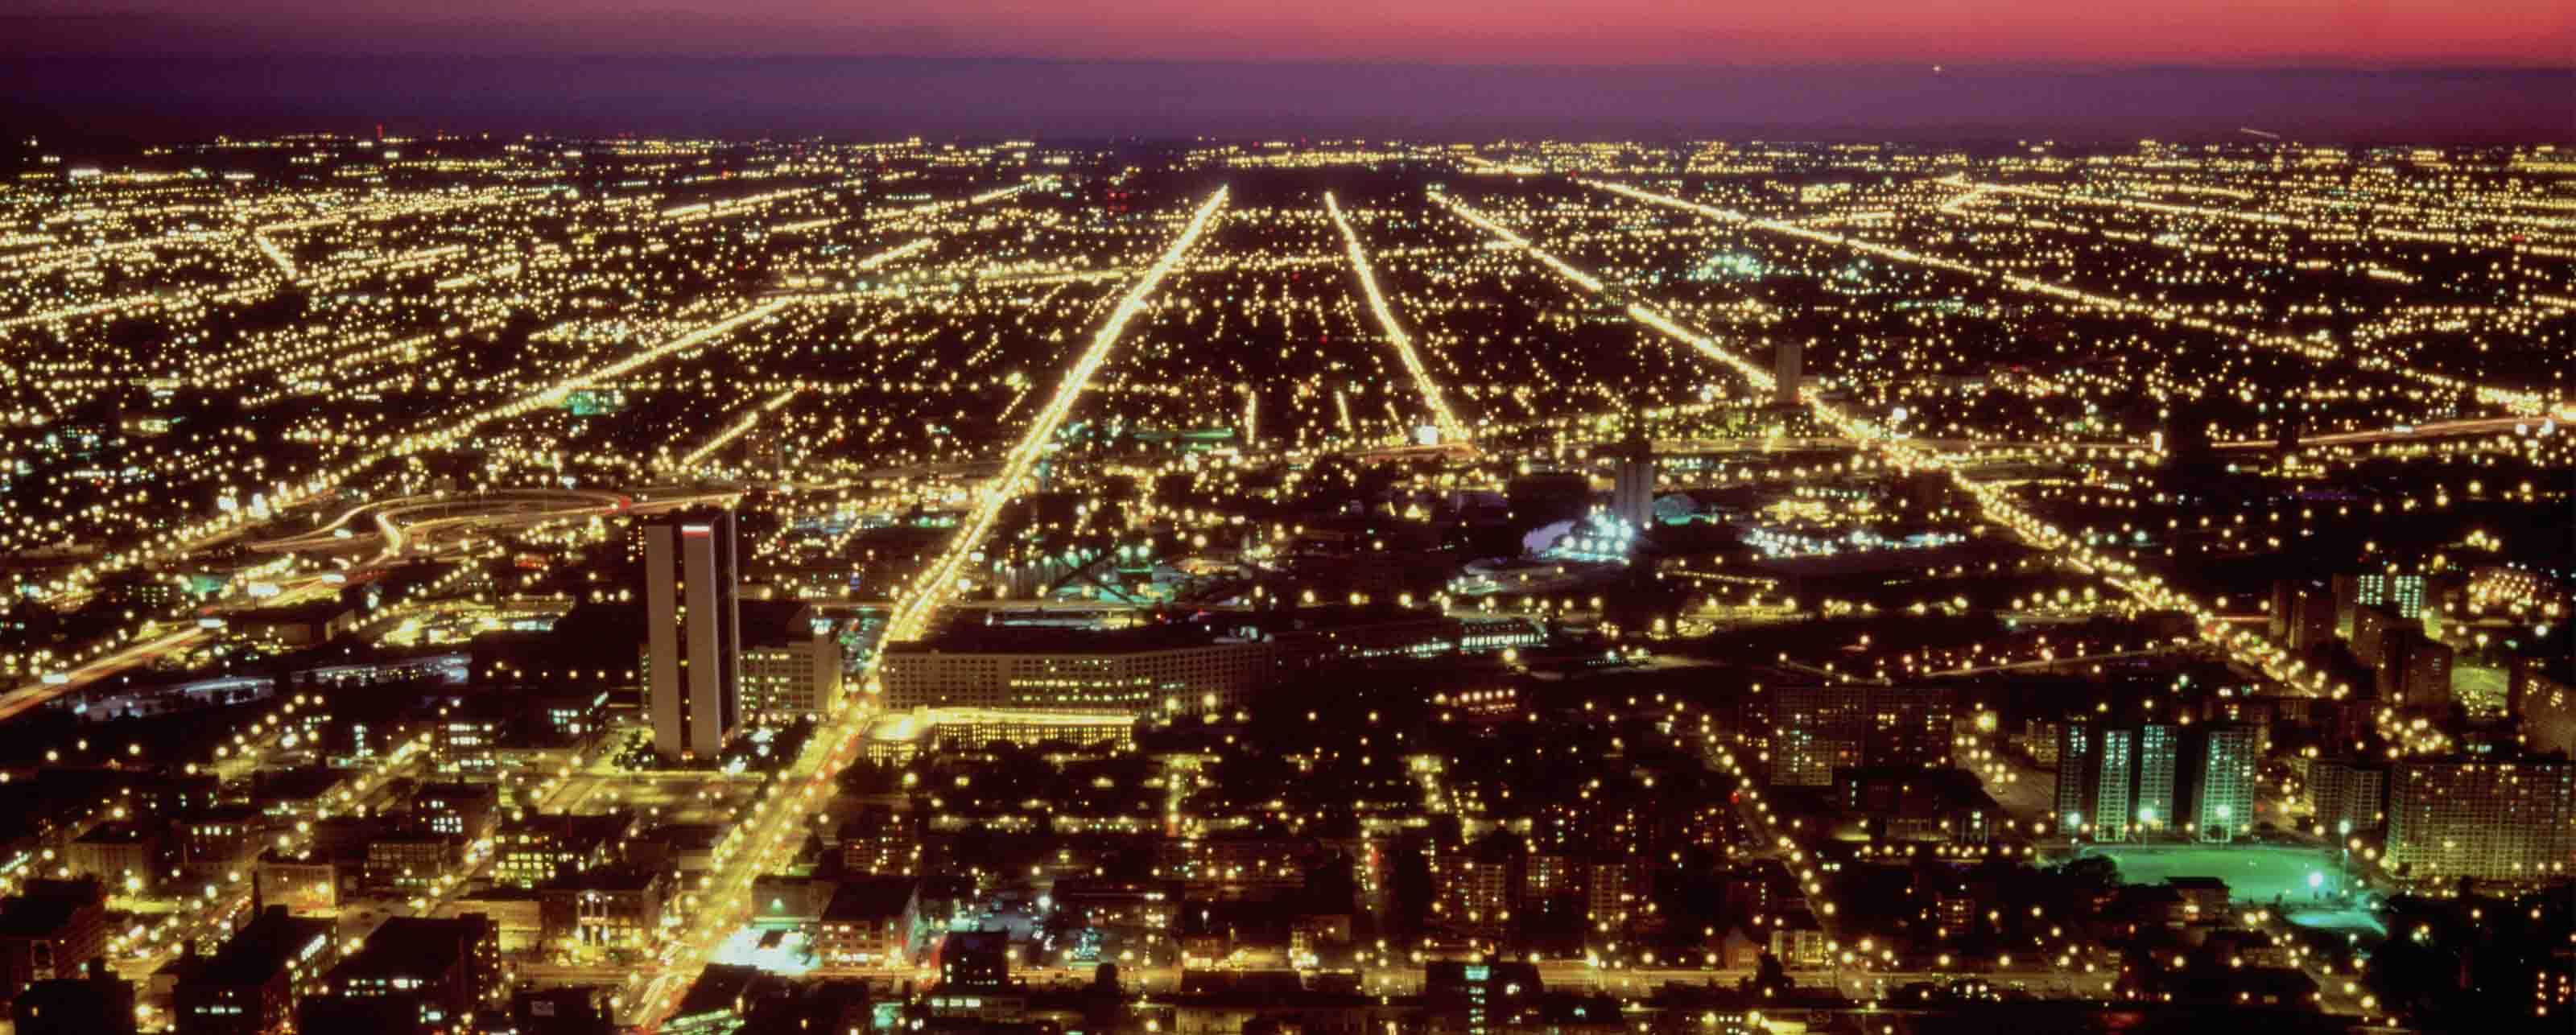 GE Digital software helps utilities control the grid, lighting up the night sky